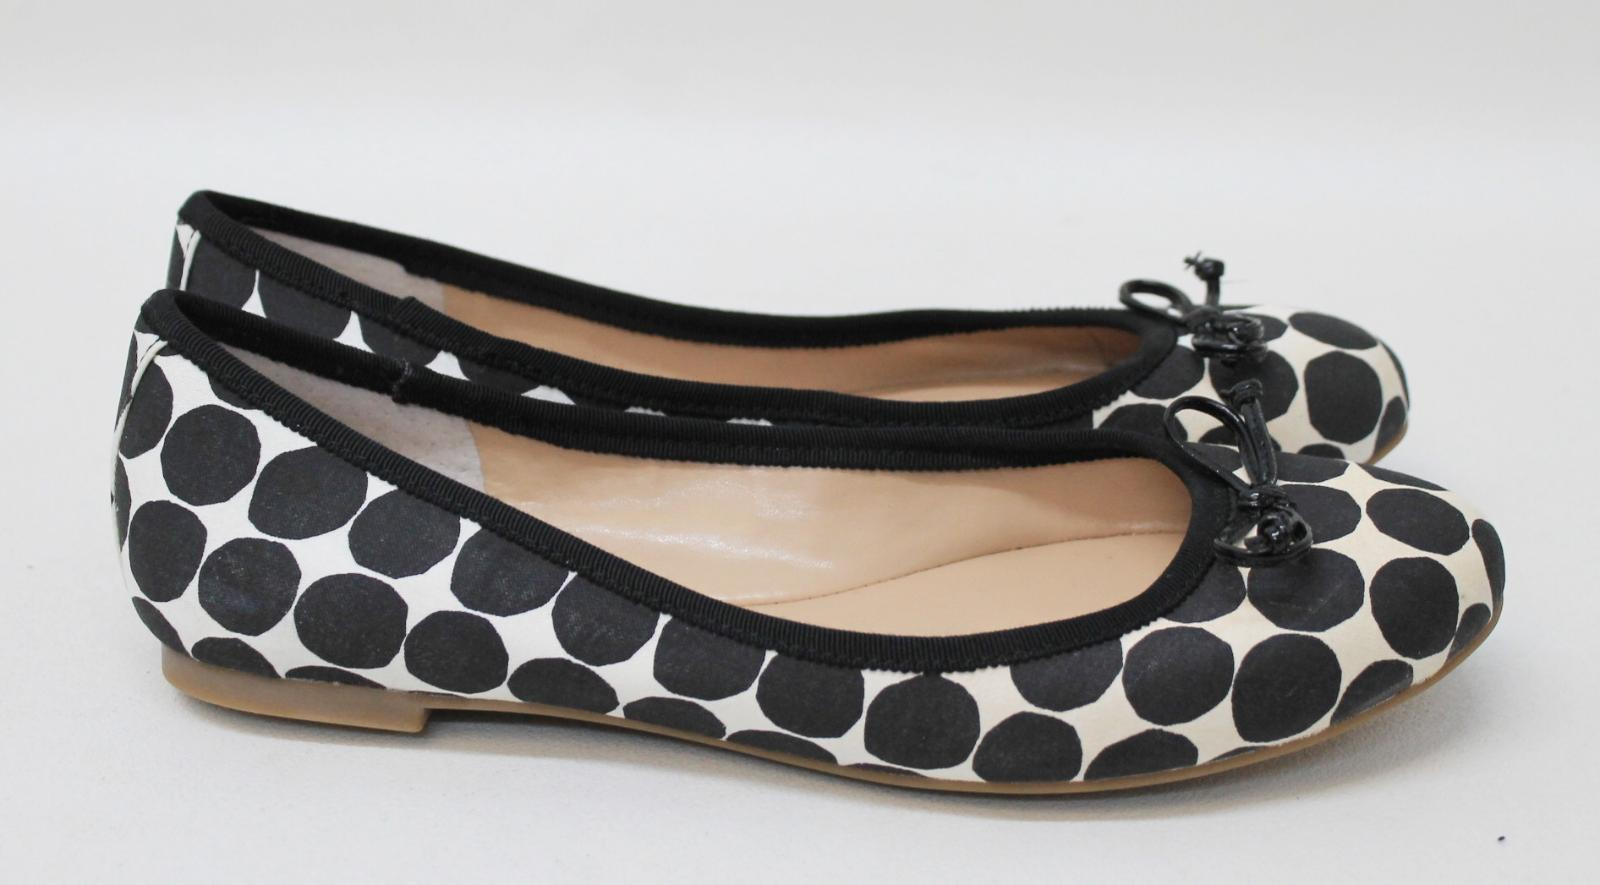 Beige Eu38 Banana Ladies Dot Republic Nwot Uk5 Shoes Ballerina Black Polka UqInZ